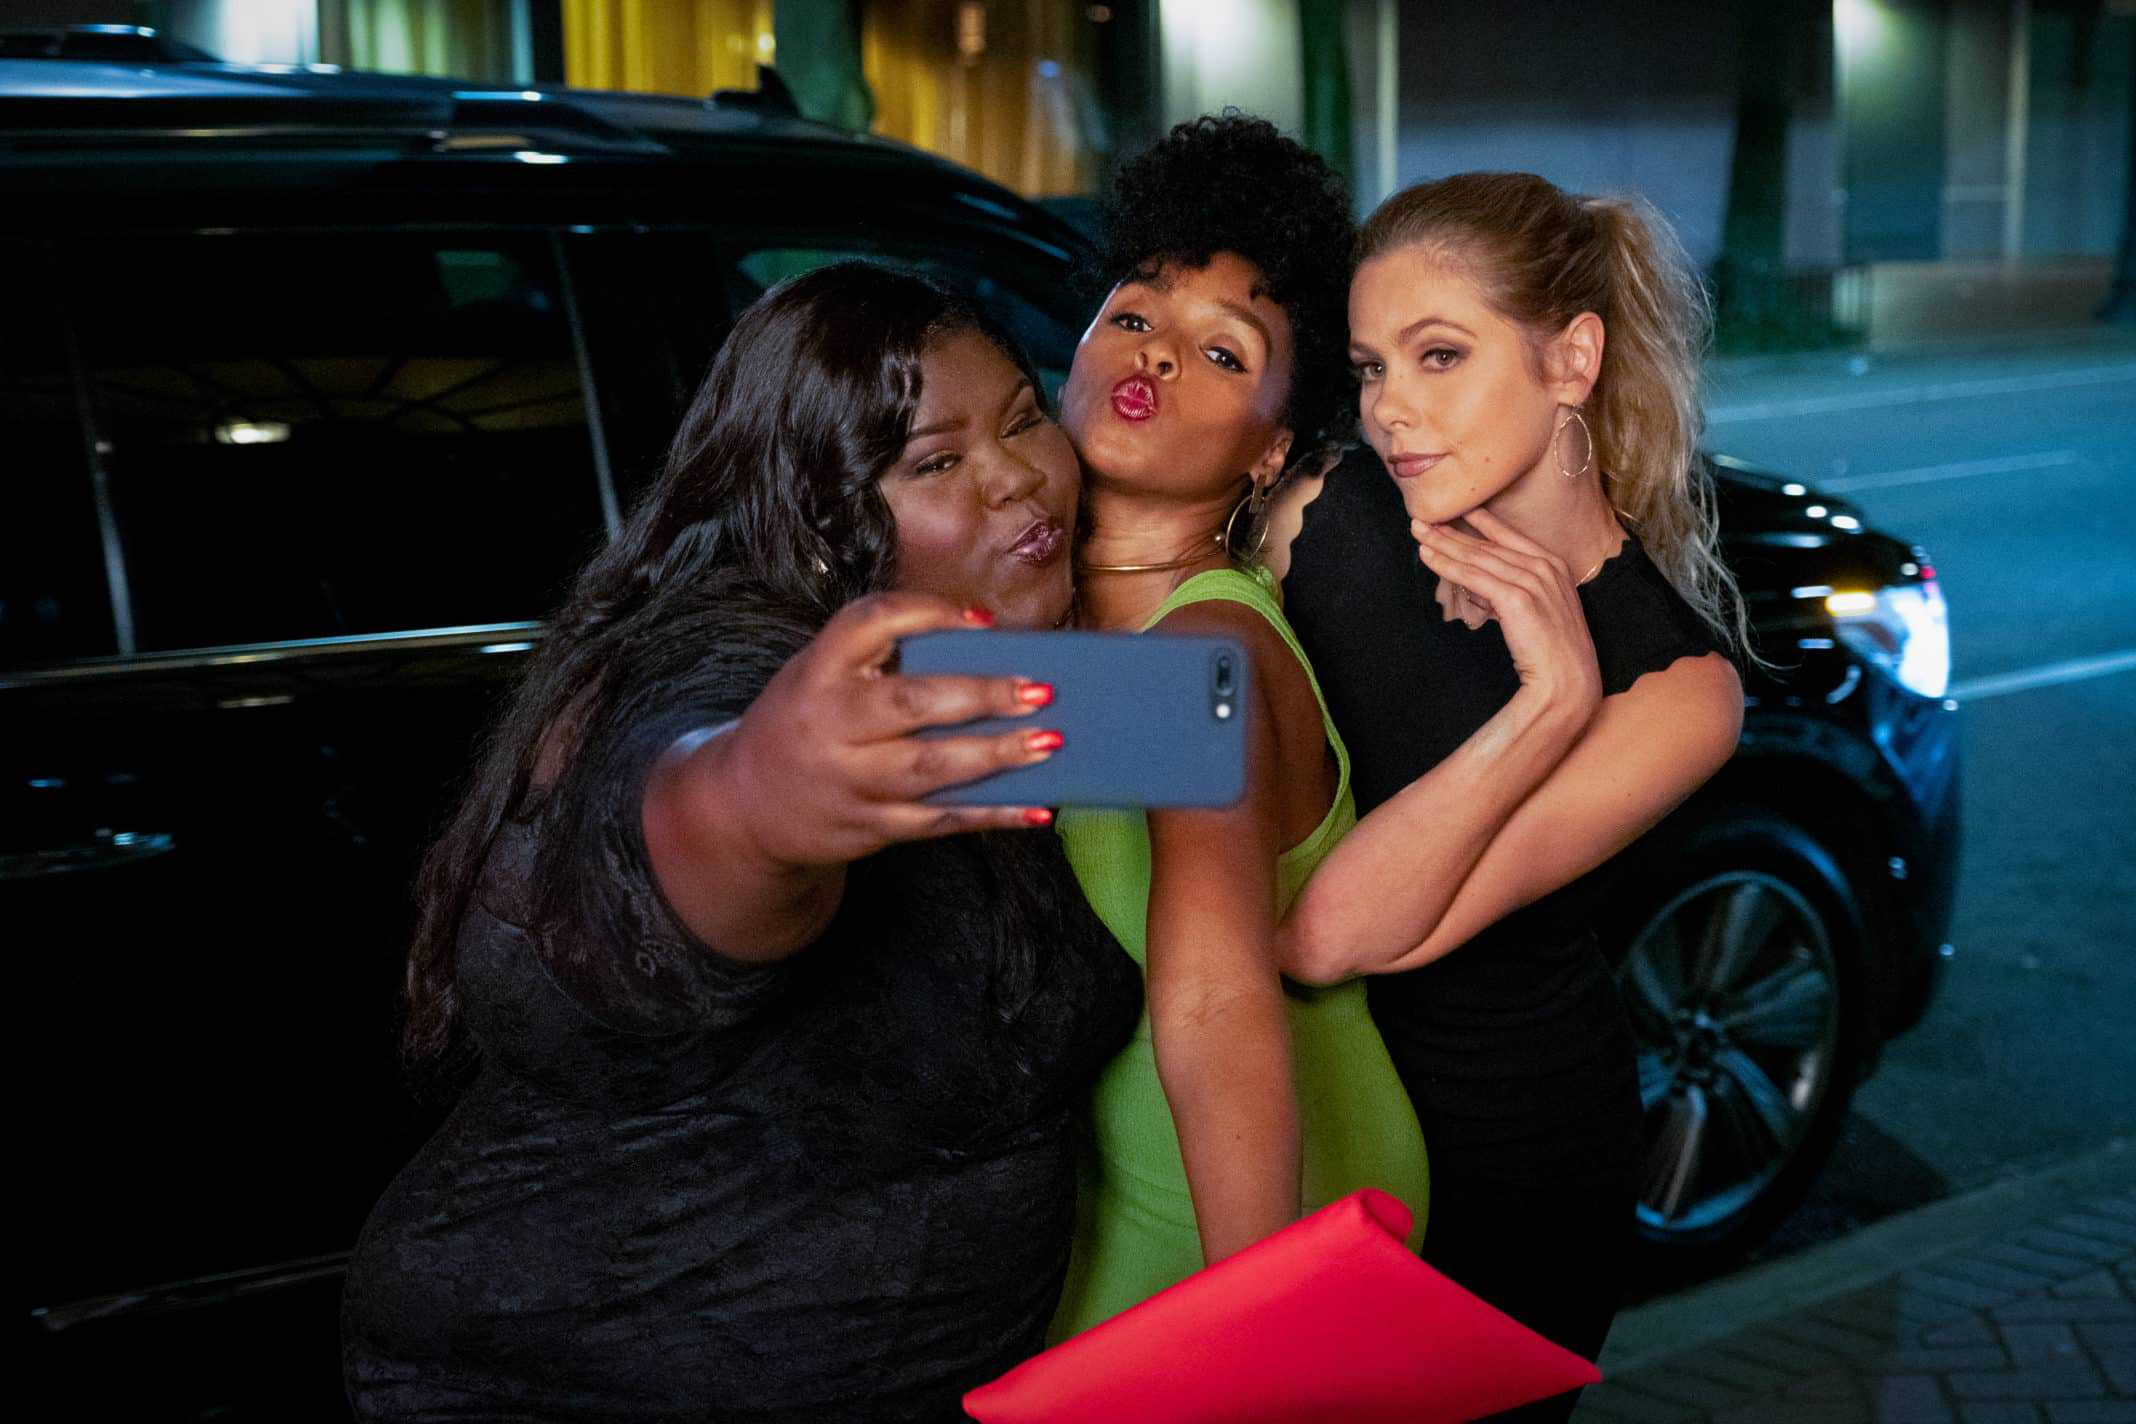 Dawn (Gabourey Sidibe), Veronica (Janelle Monae) and Sarah (Lily Cowles) taking a picture together.